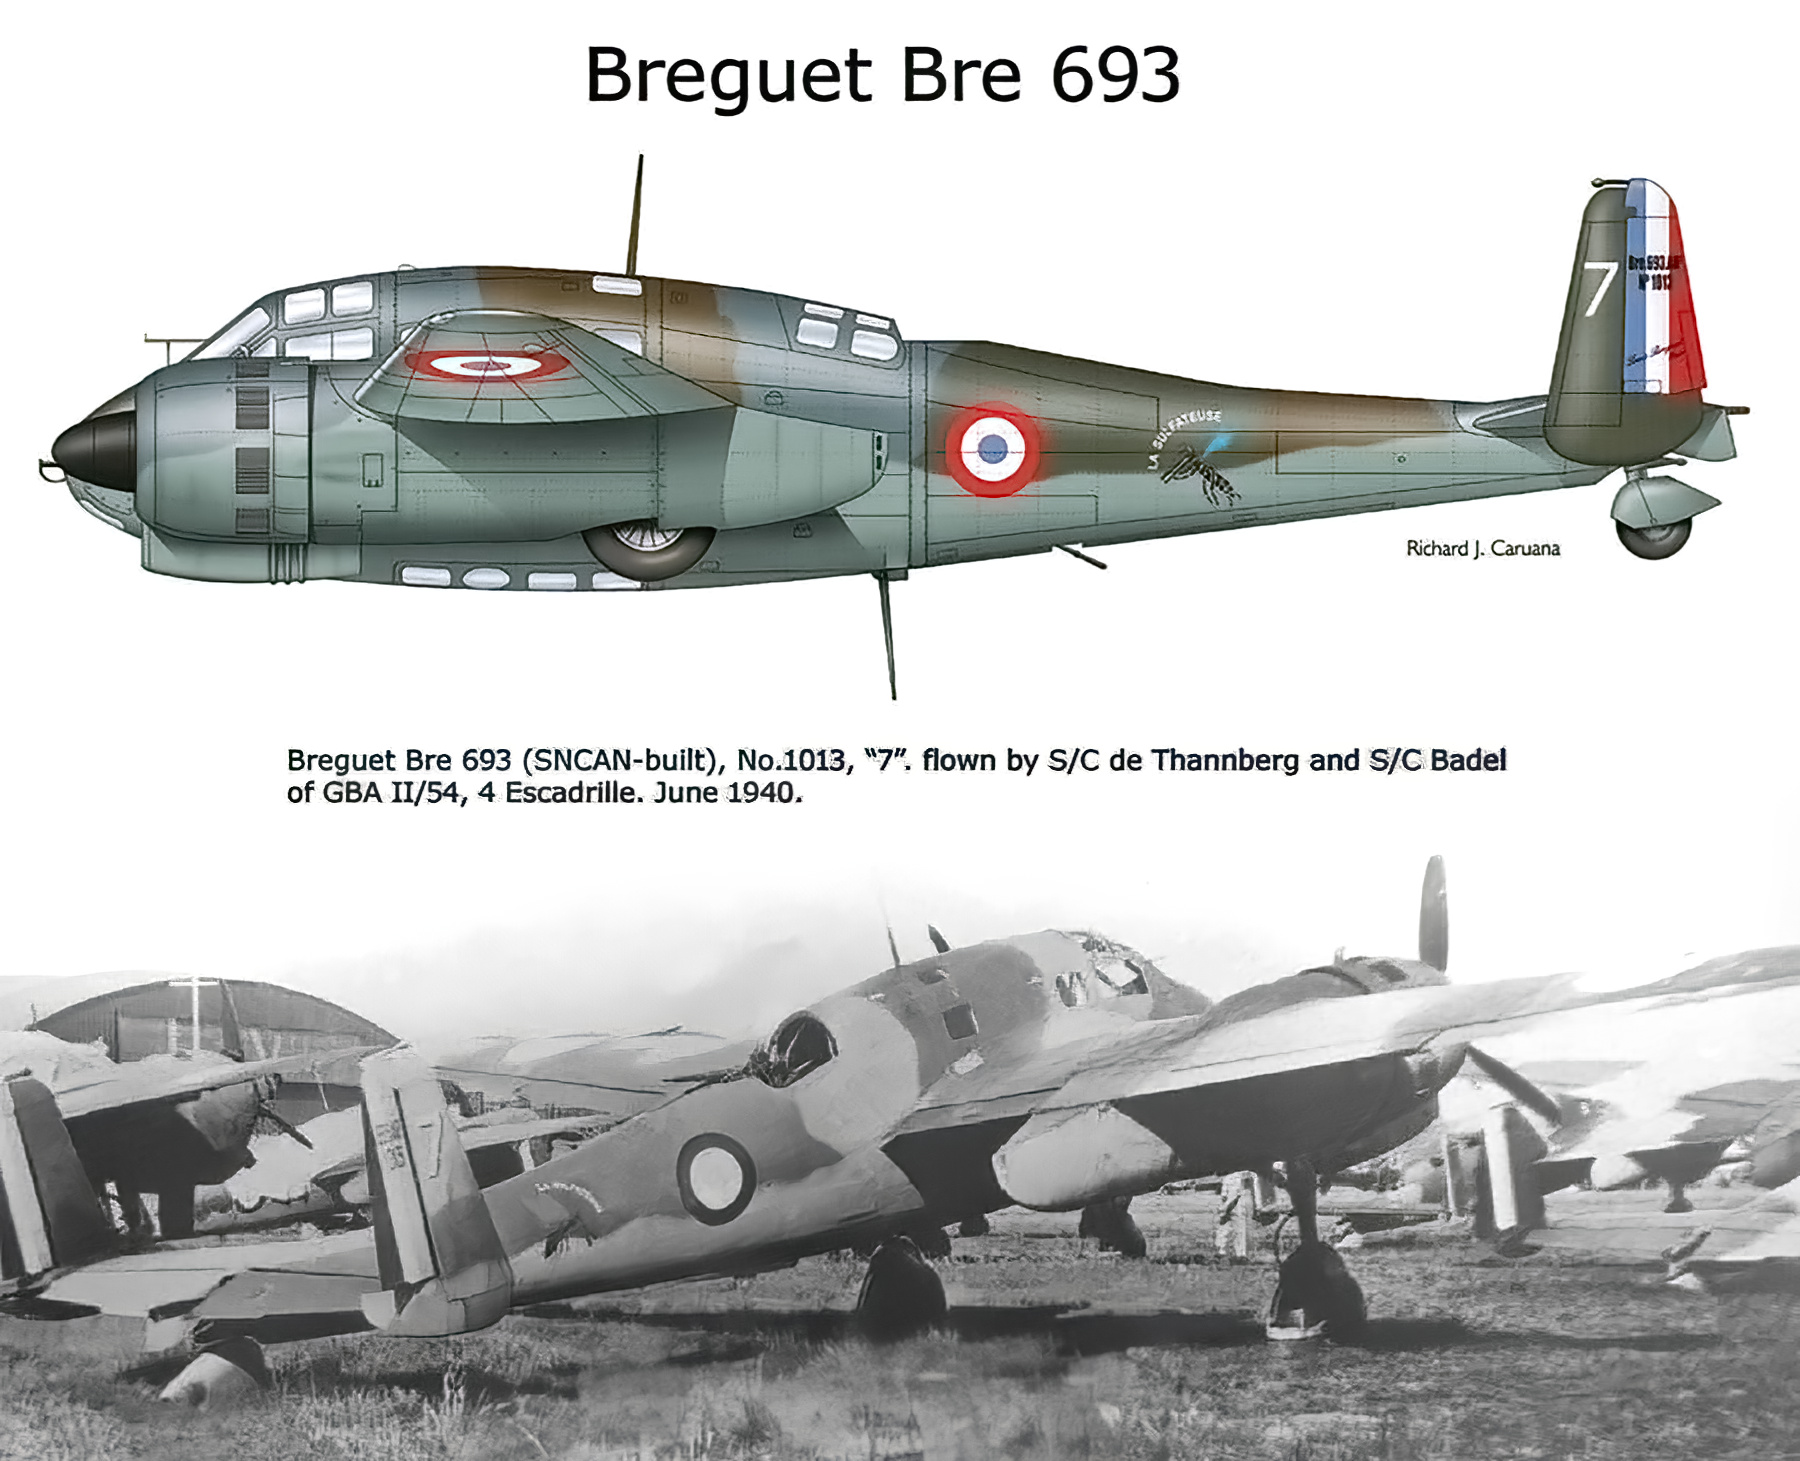 French Airforce Breguet Bre 693 sn1013 GBA II.54 France Jun 1940 profile 0A